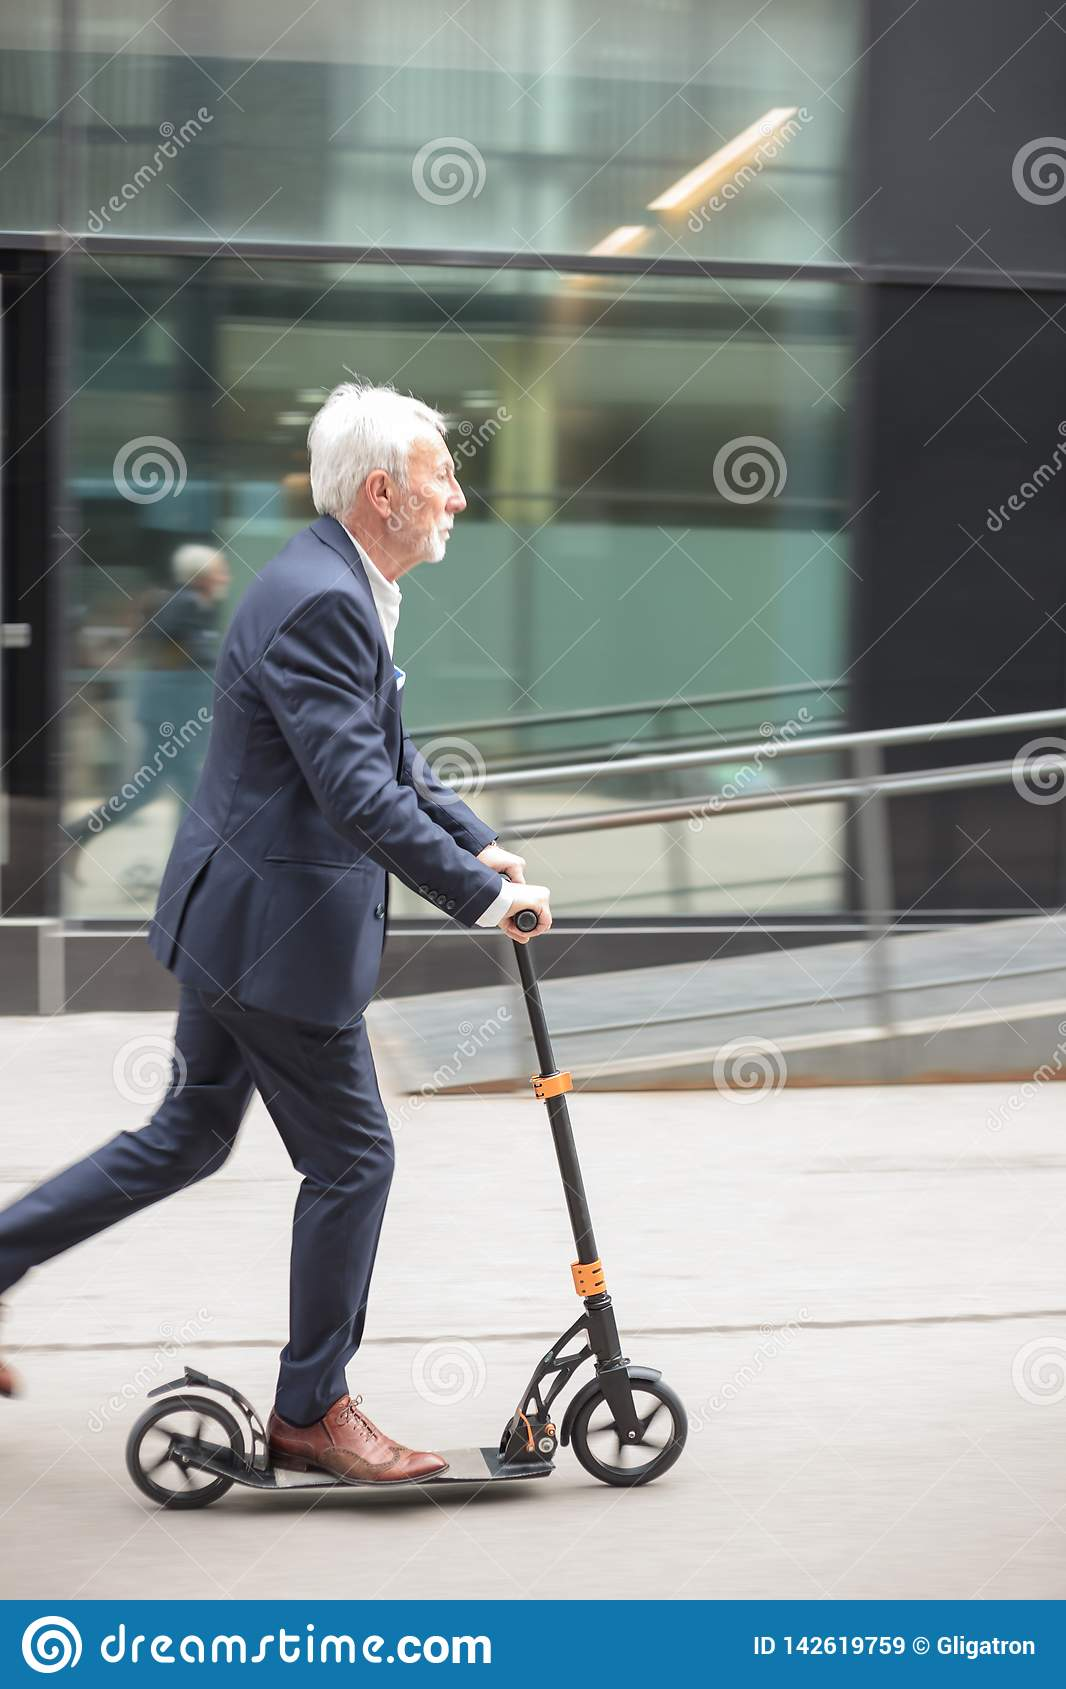 Serious senior businessman commuting to work on a push scooter